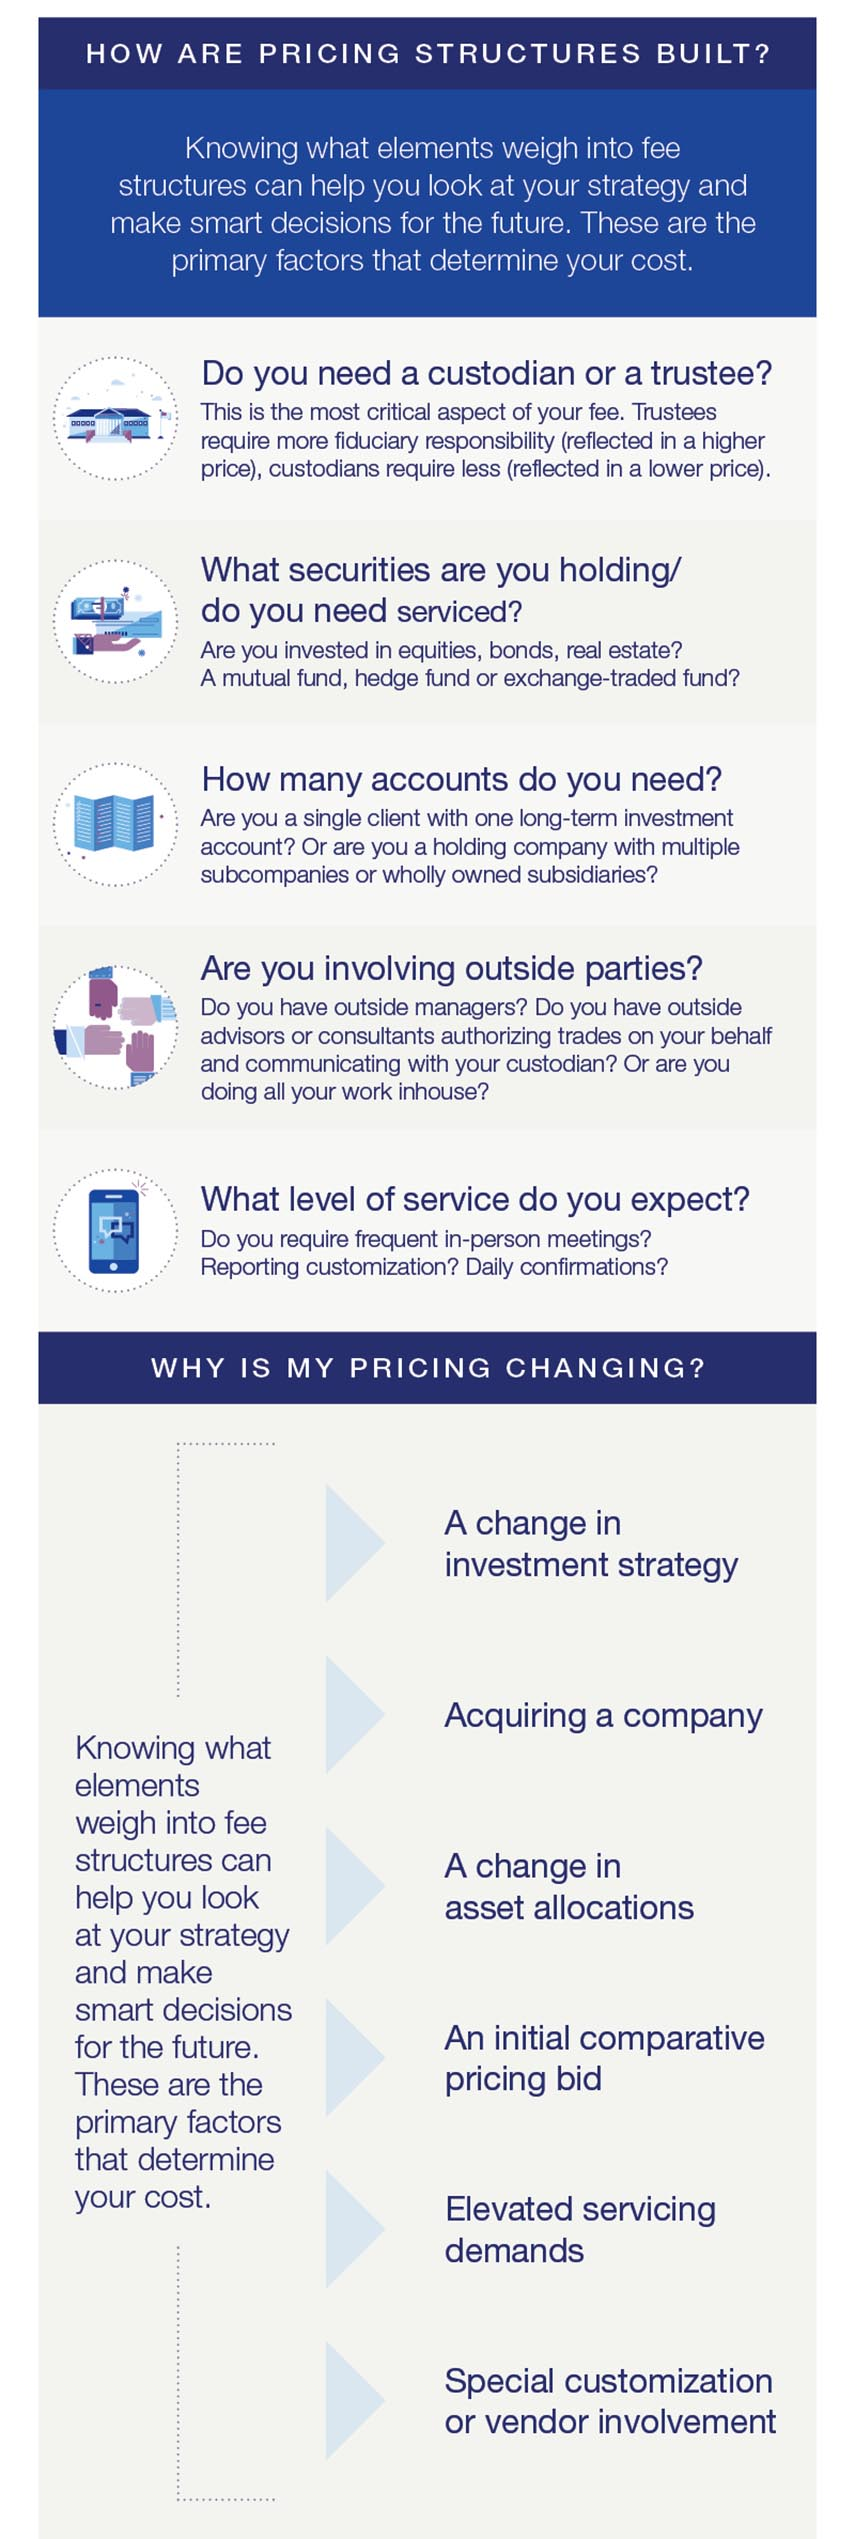 Custody pricing infographic